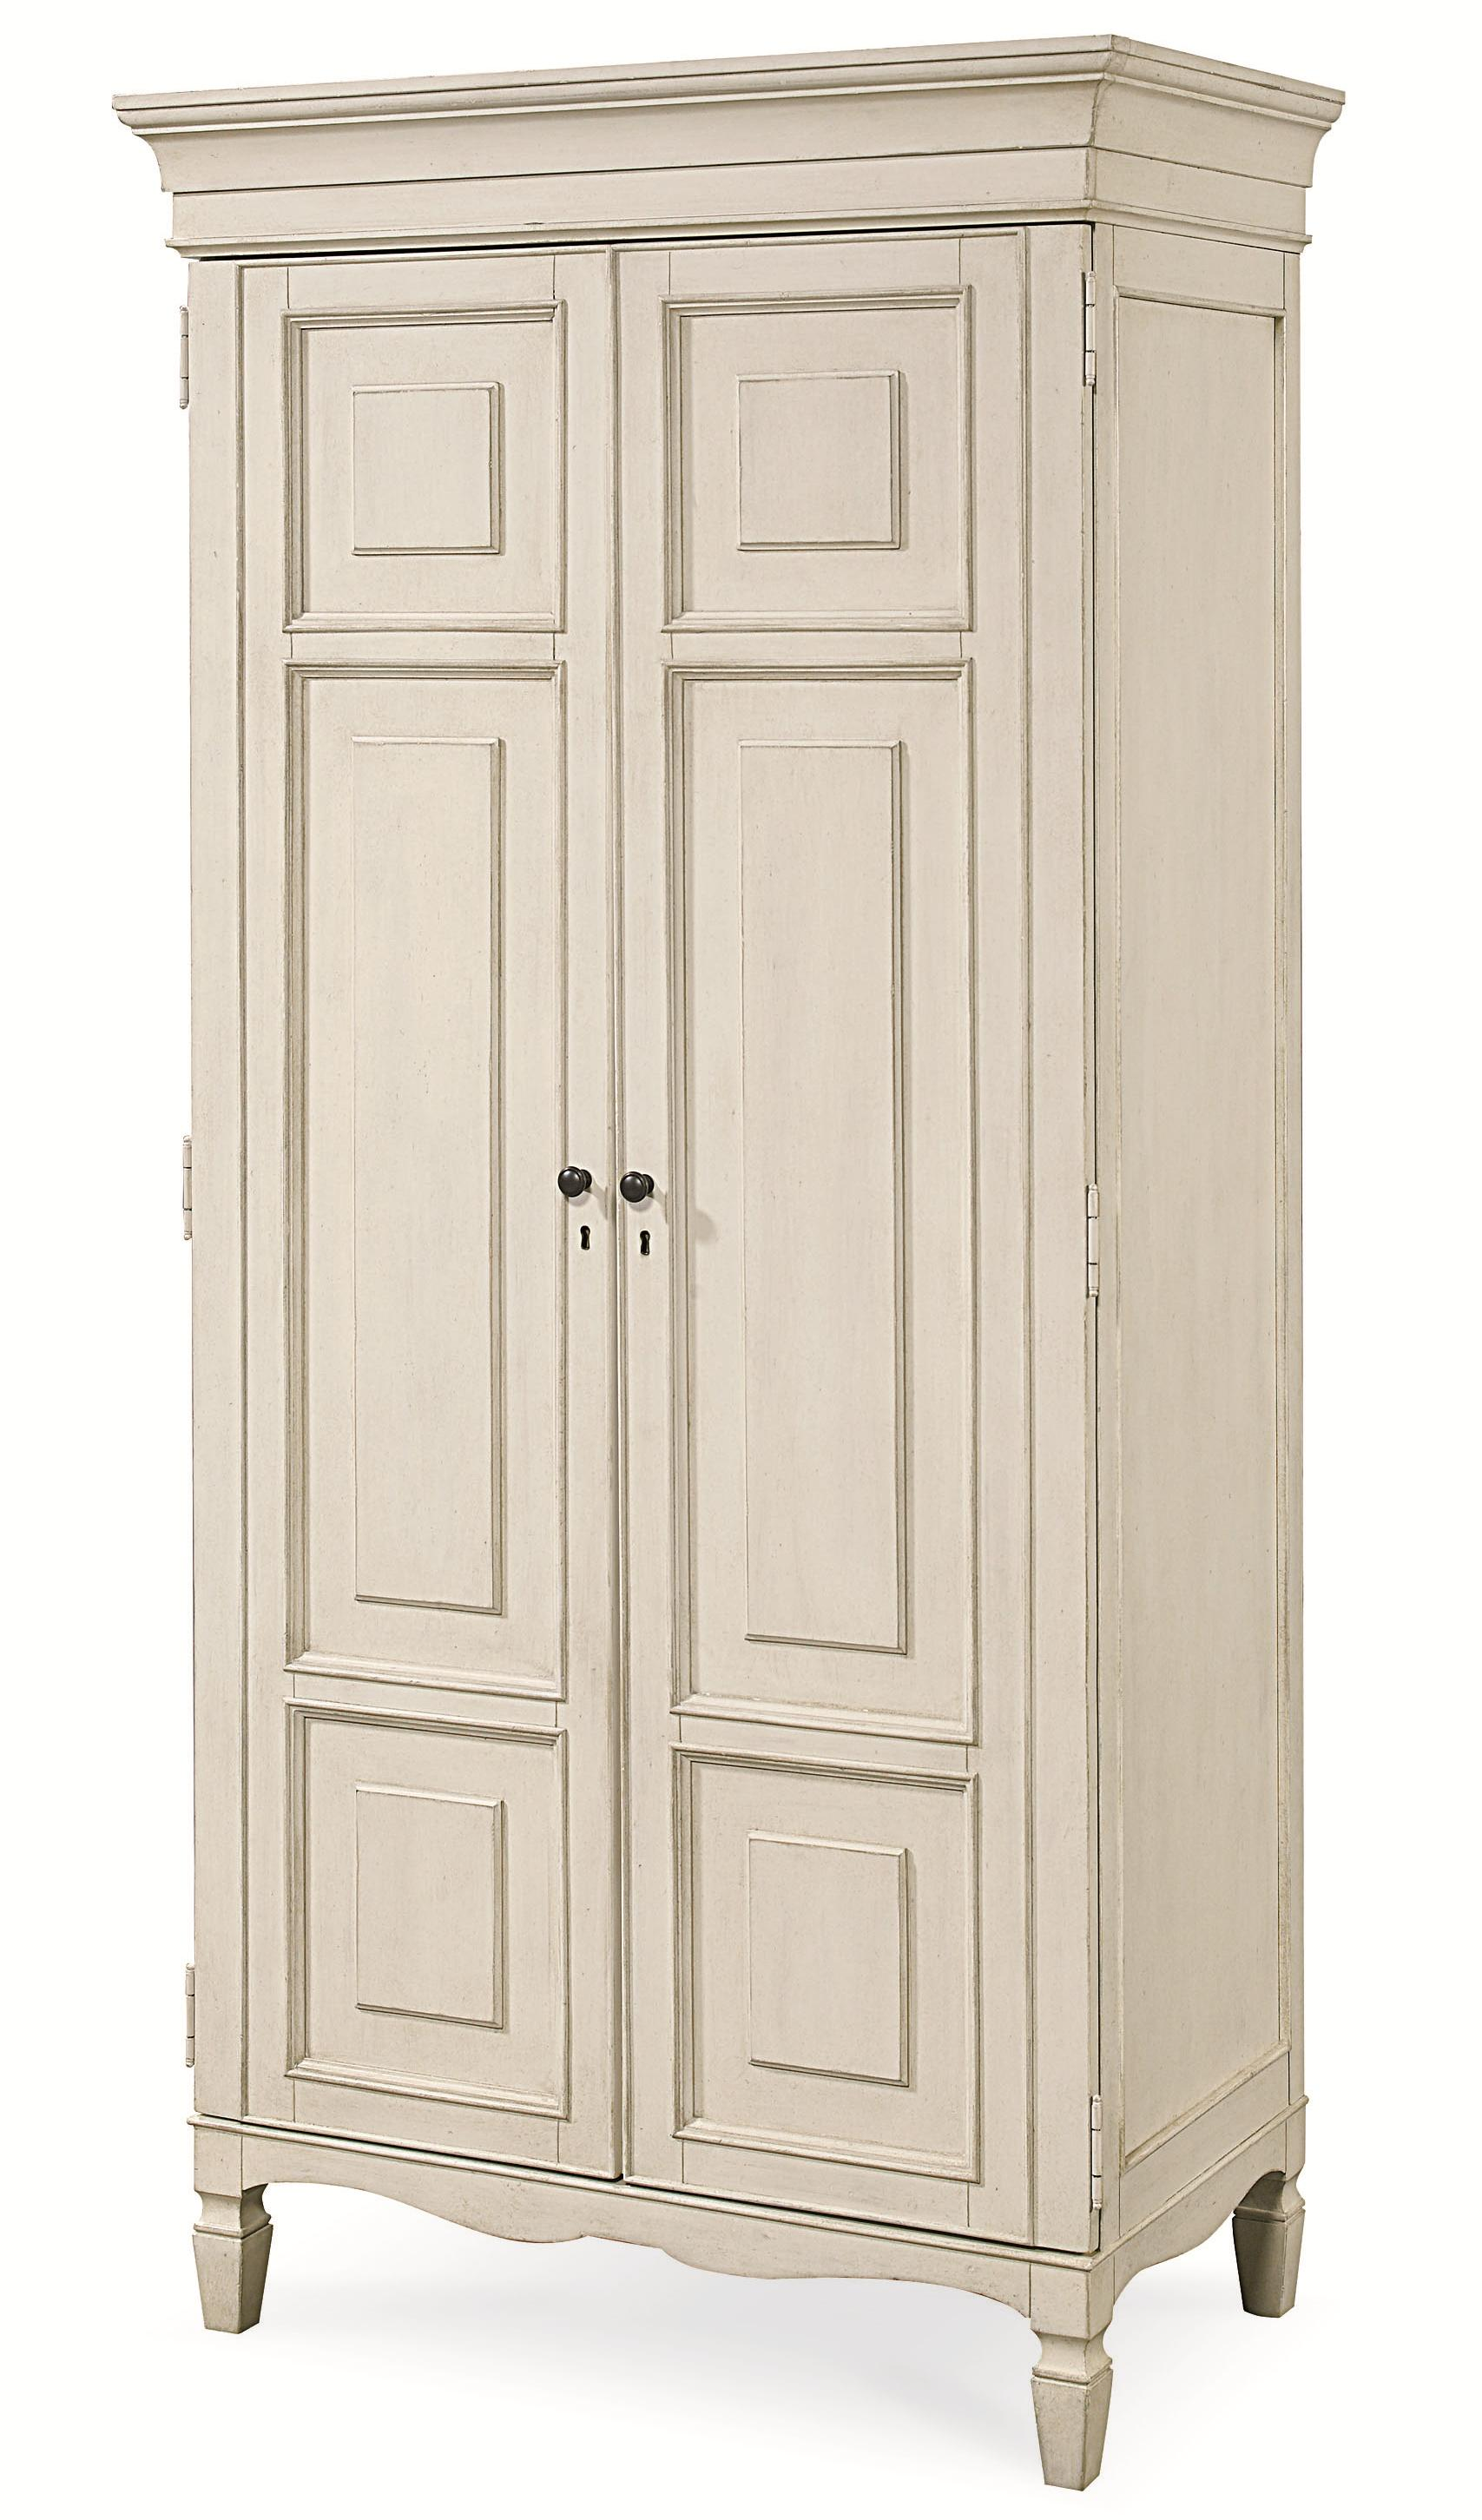 2 Door Tall Cabinet By Universal Wolf And Gardiner Wolf